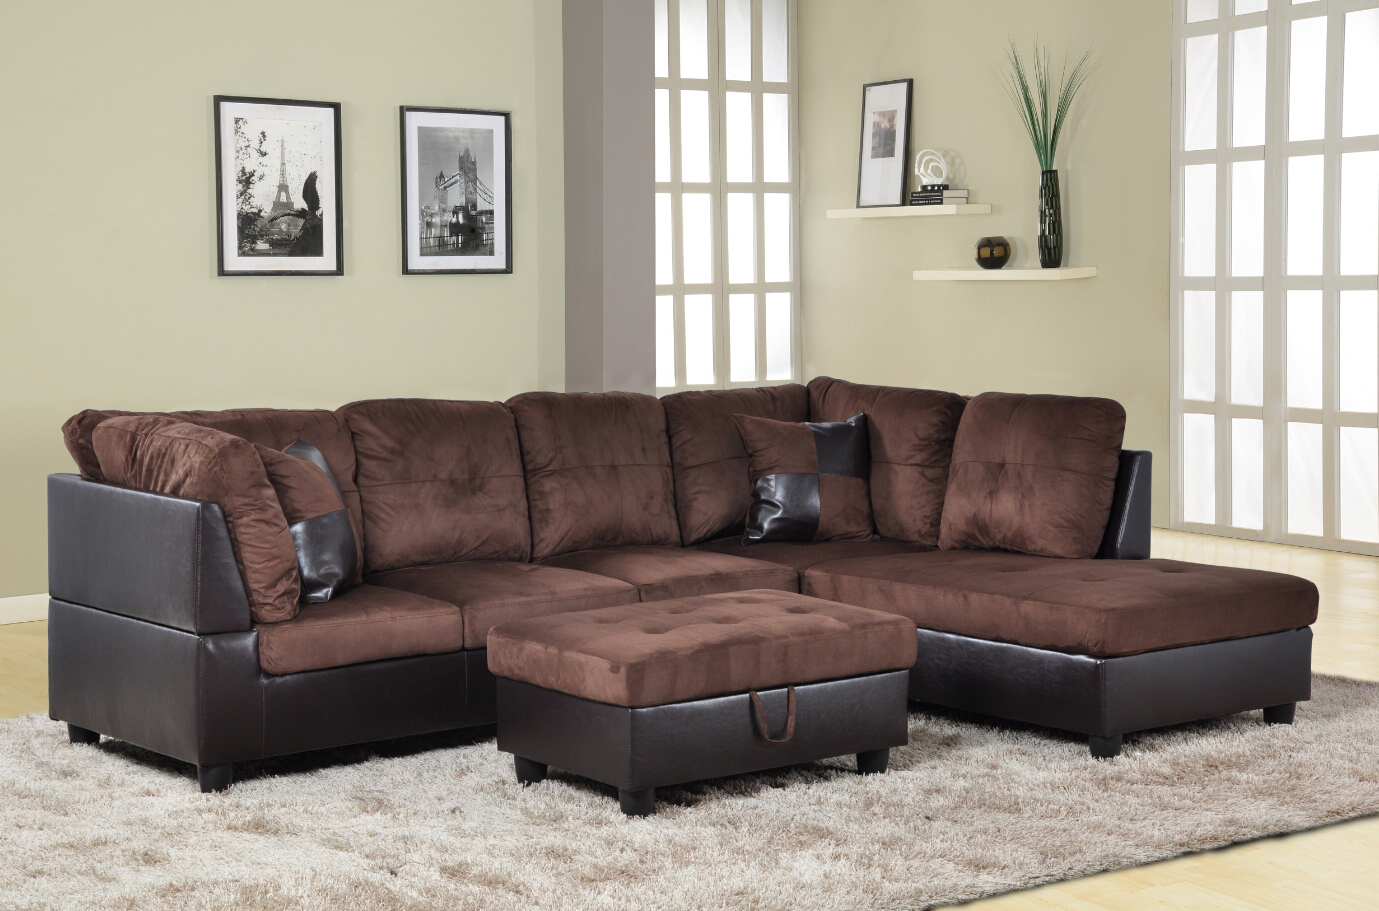 Product Image AYCP Furniture 3pcs L Shape Sectional Sofa Set, Right Hand  Facing Chaise, Microfiber